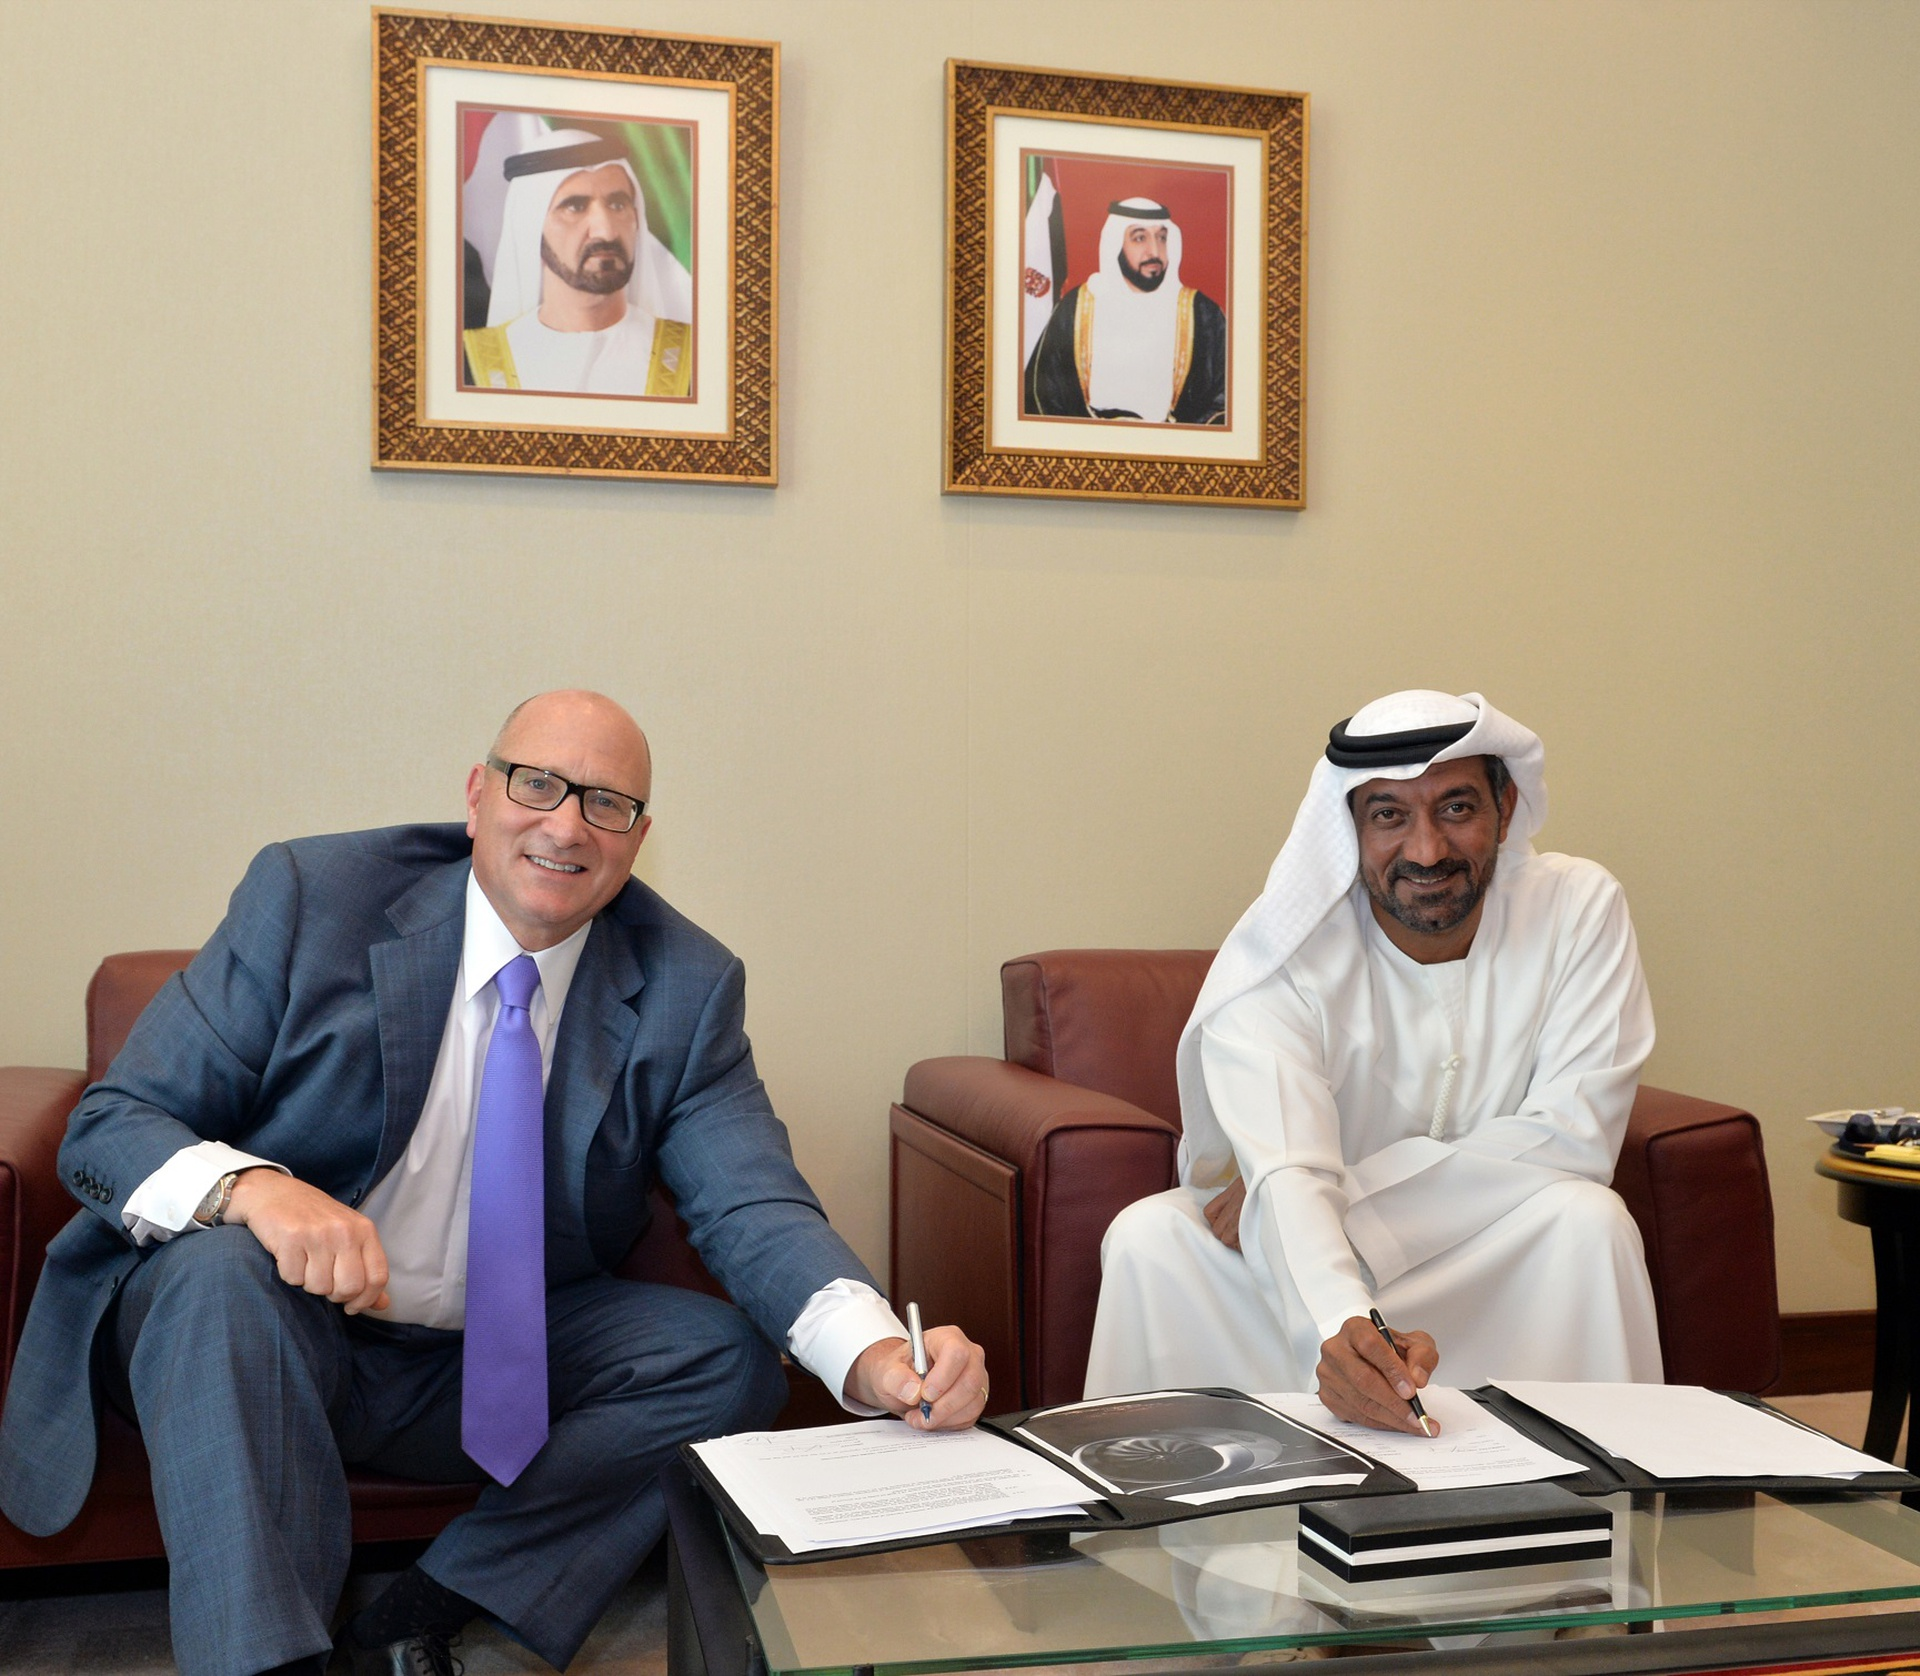 At the Dubai Air Show today, HH Sheikh Ahmed bin Saeed Al Maktoum, Chairman and Chief Executive, Emirates airline and Group (right), and David Joyce, President and Chief Executive Office for GE Aviation signed a US$16 billion agreement OnPoint solution agreement for the maintenance, repair and overhaul (MRO) of the GE9X engines that will power Emirates' fleet of 150 Boeing 777X aircraft over a period of 12 years. This is Emirates' largest engine MRO contract to date.